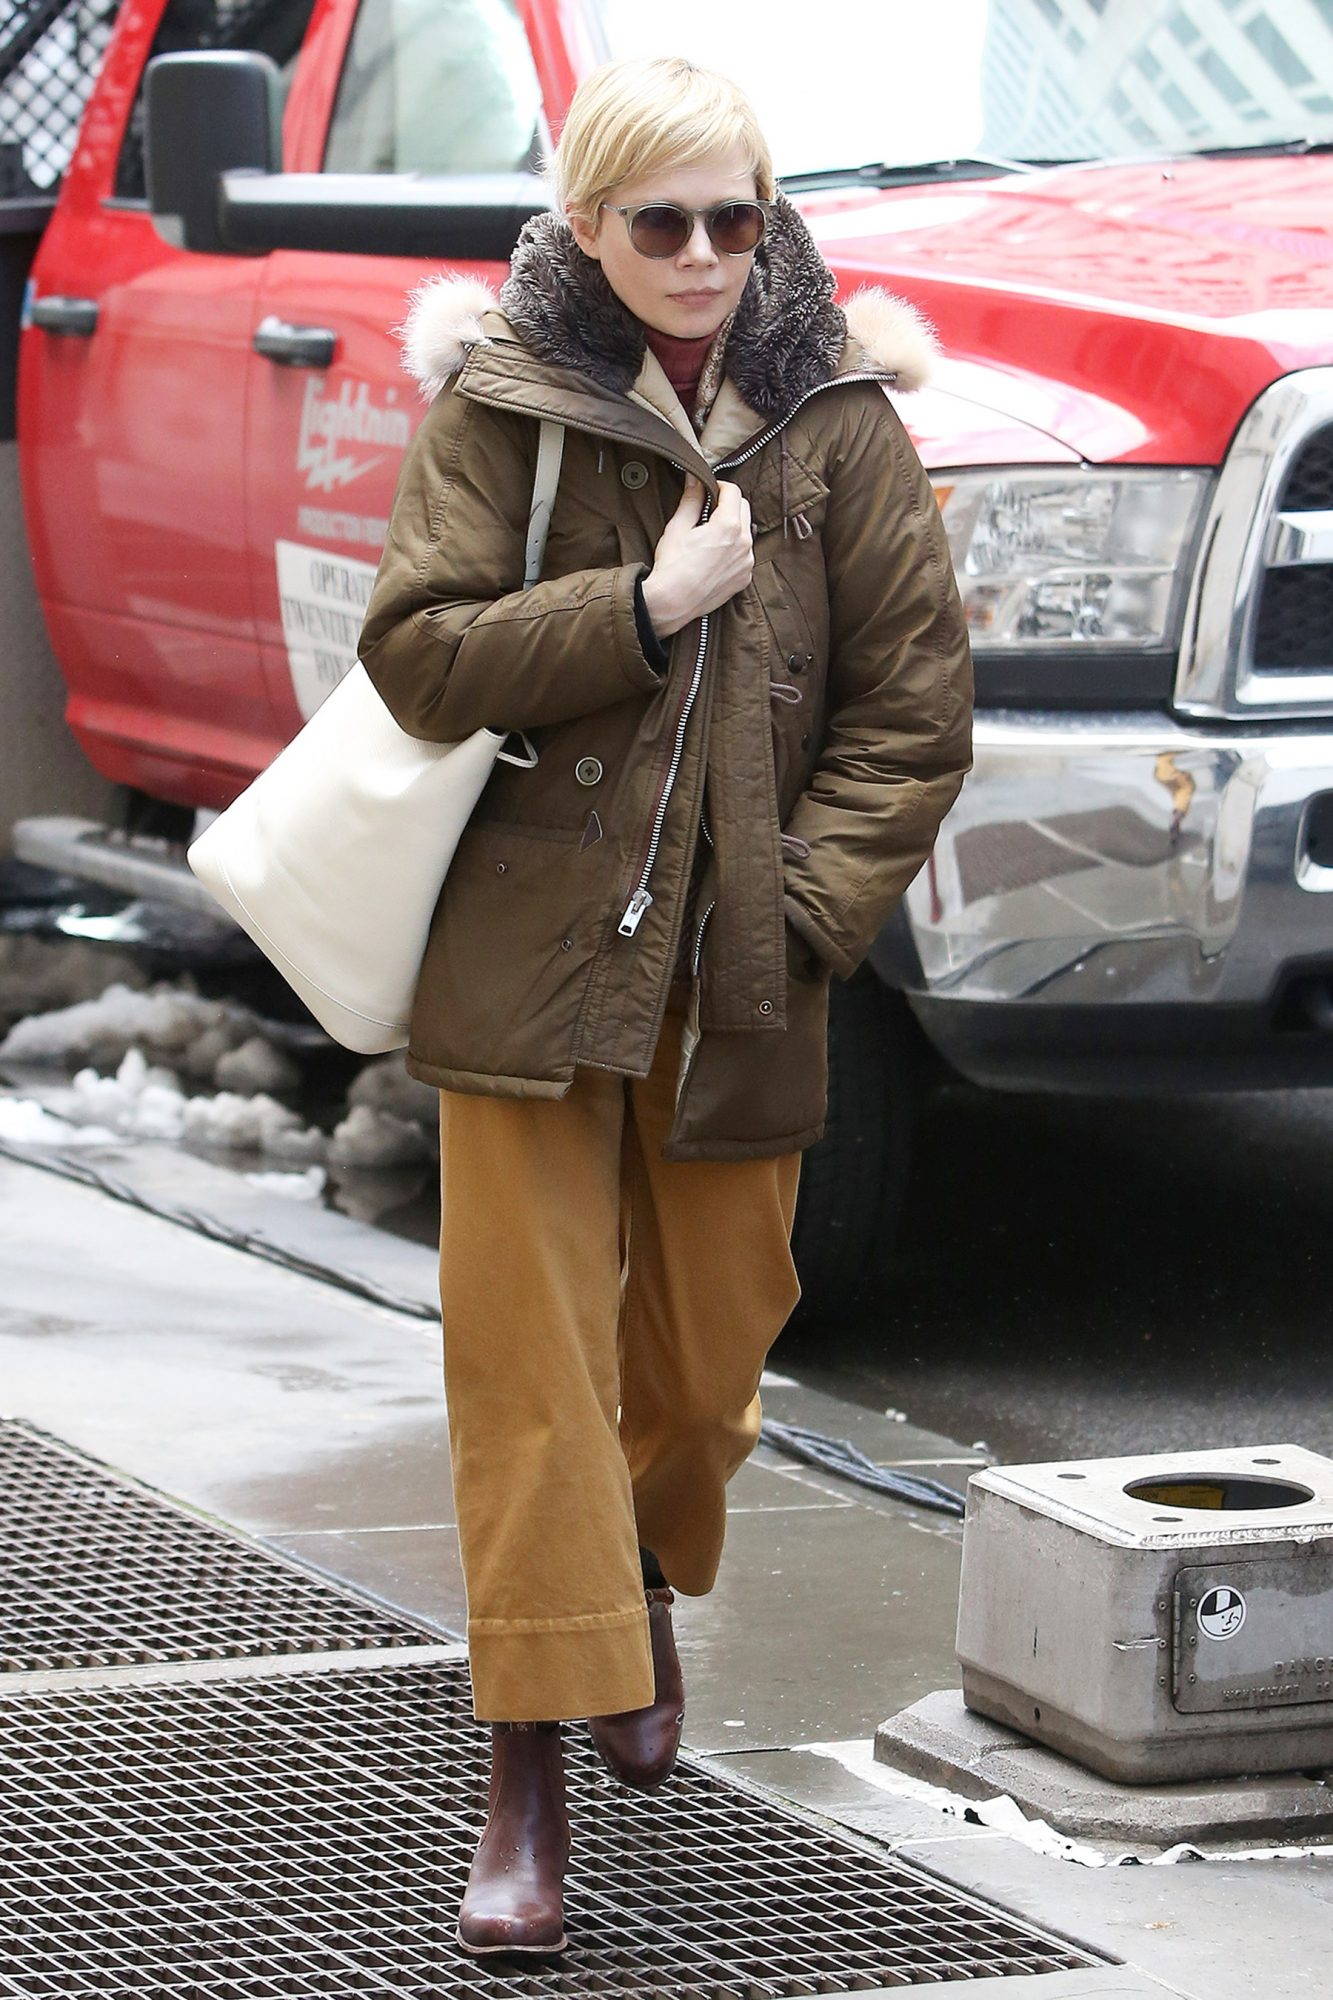 EXCLUSIVE: Michelle Williams Arrives to set for her New Movie 'Fosse/Verdon' in New York City.